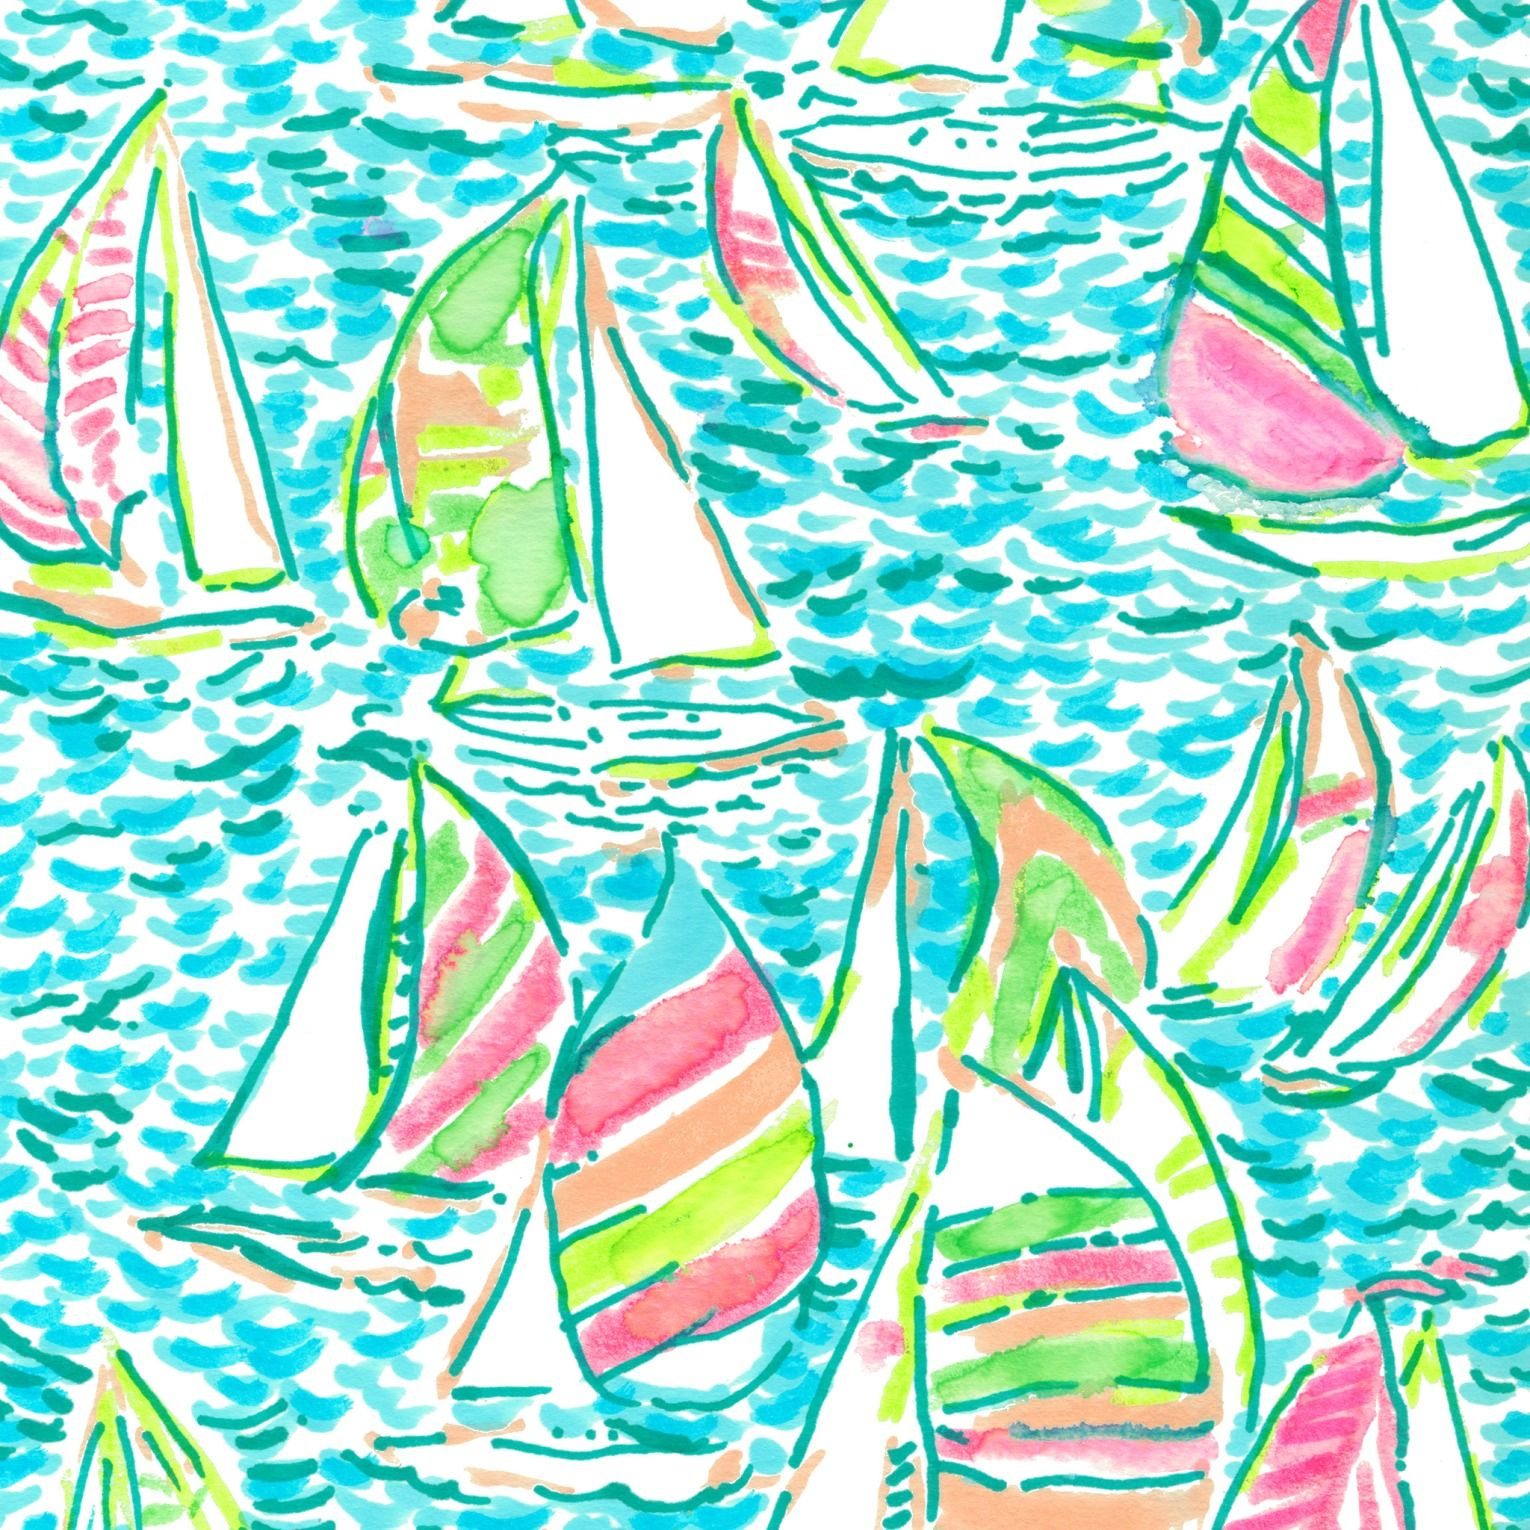 Lilly Pulitzer Wallpaper Fall 3 Words You Gotta Regatta Click The Throuhg To Shop Now